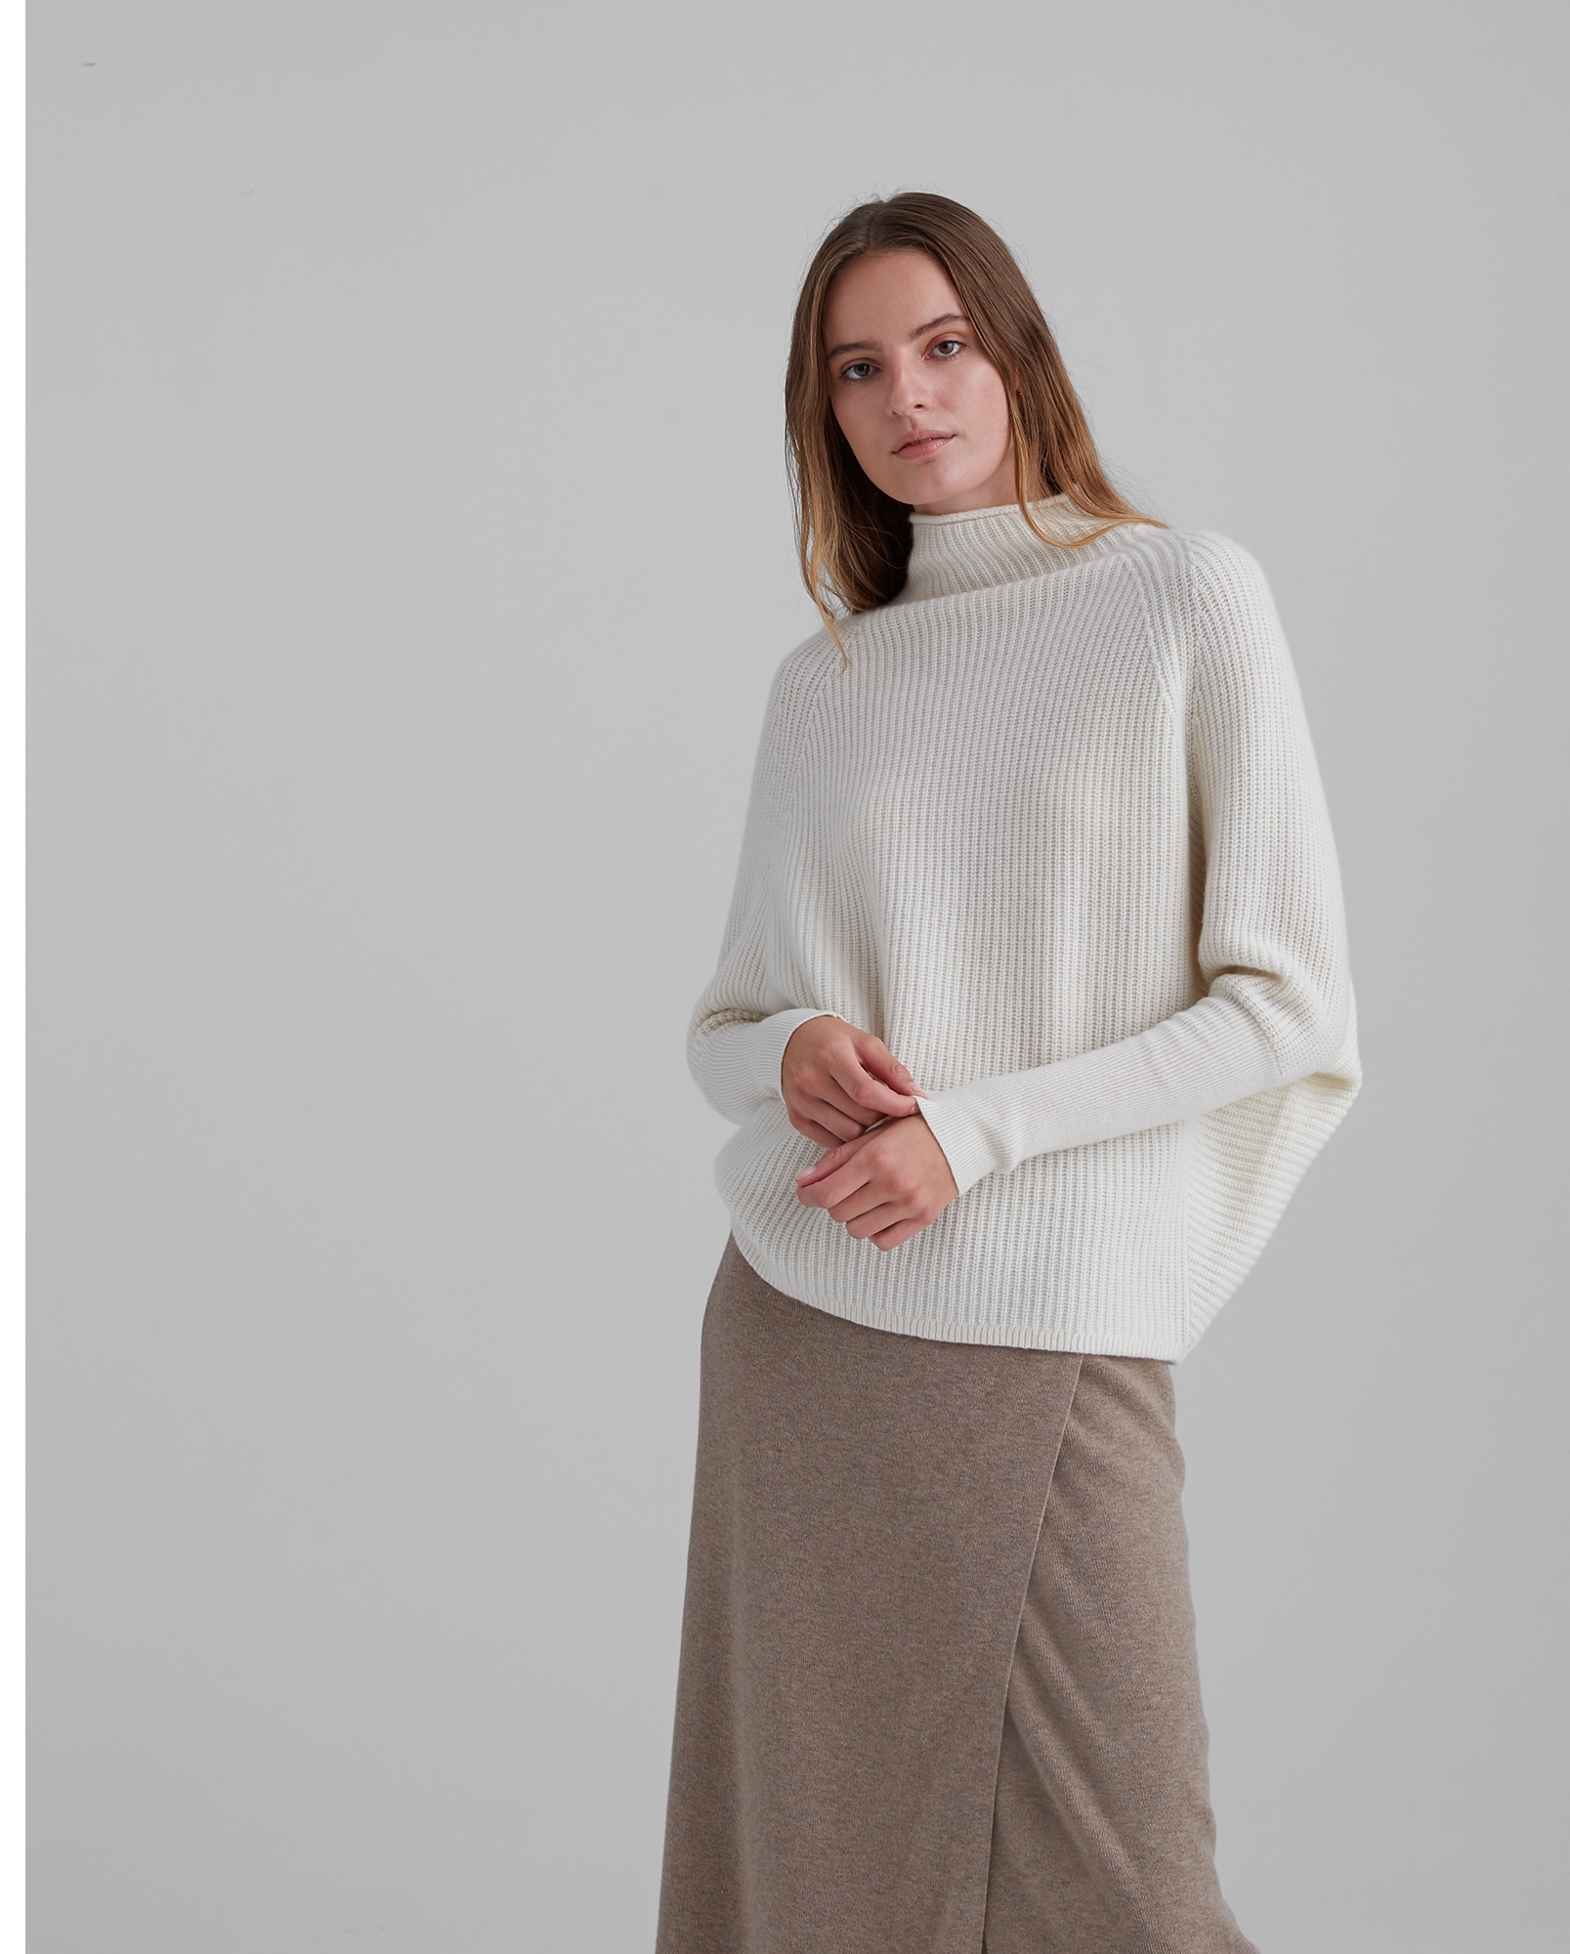 Club Monaco: 30% off All Sweaters